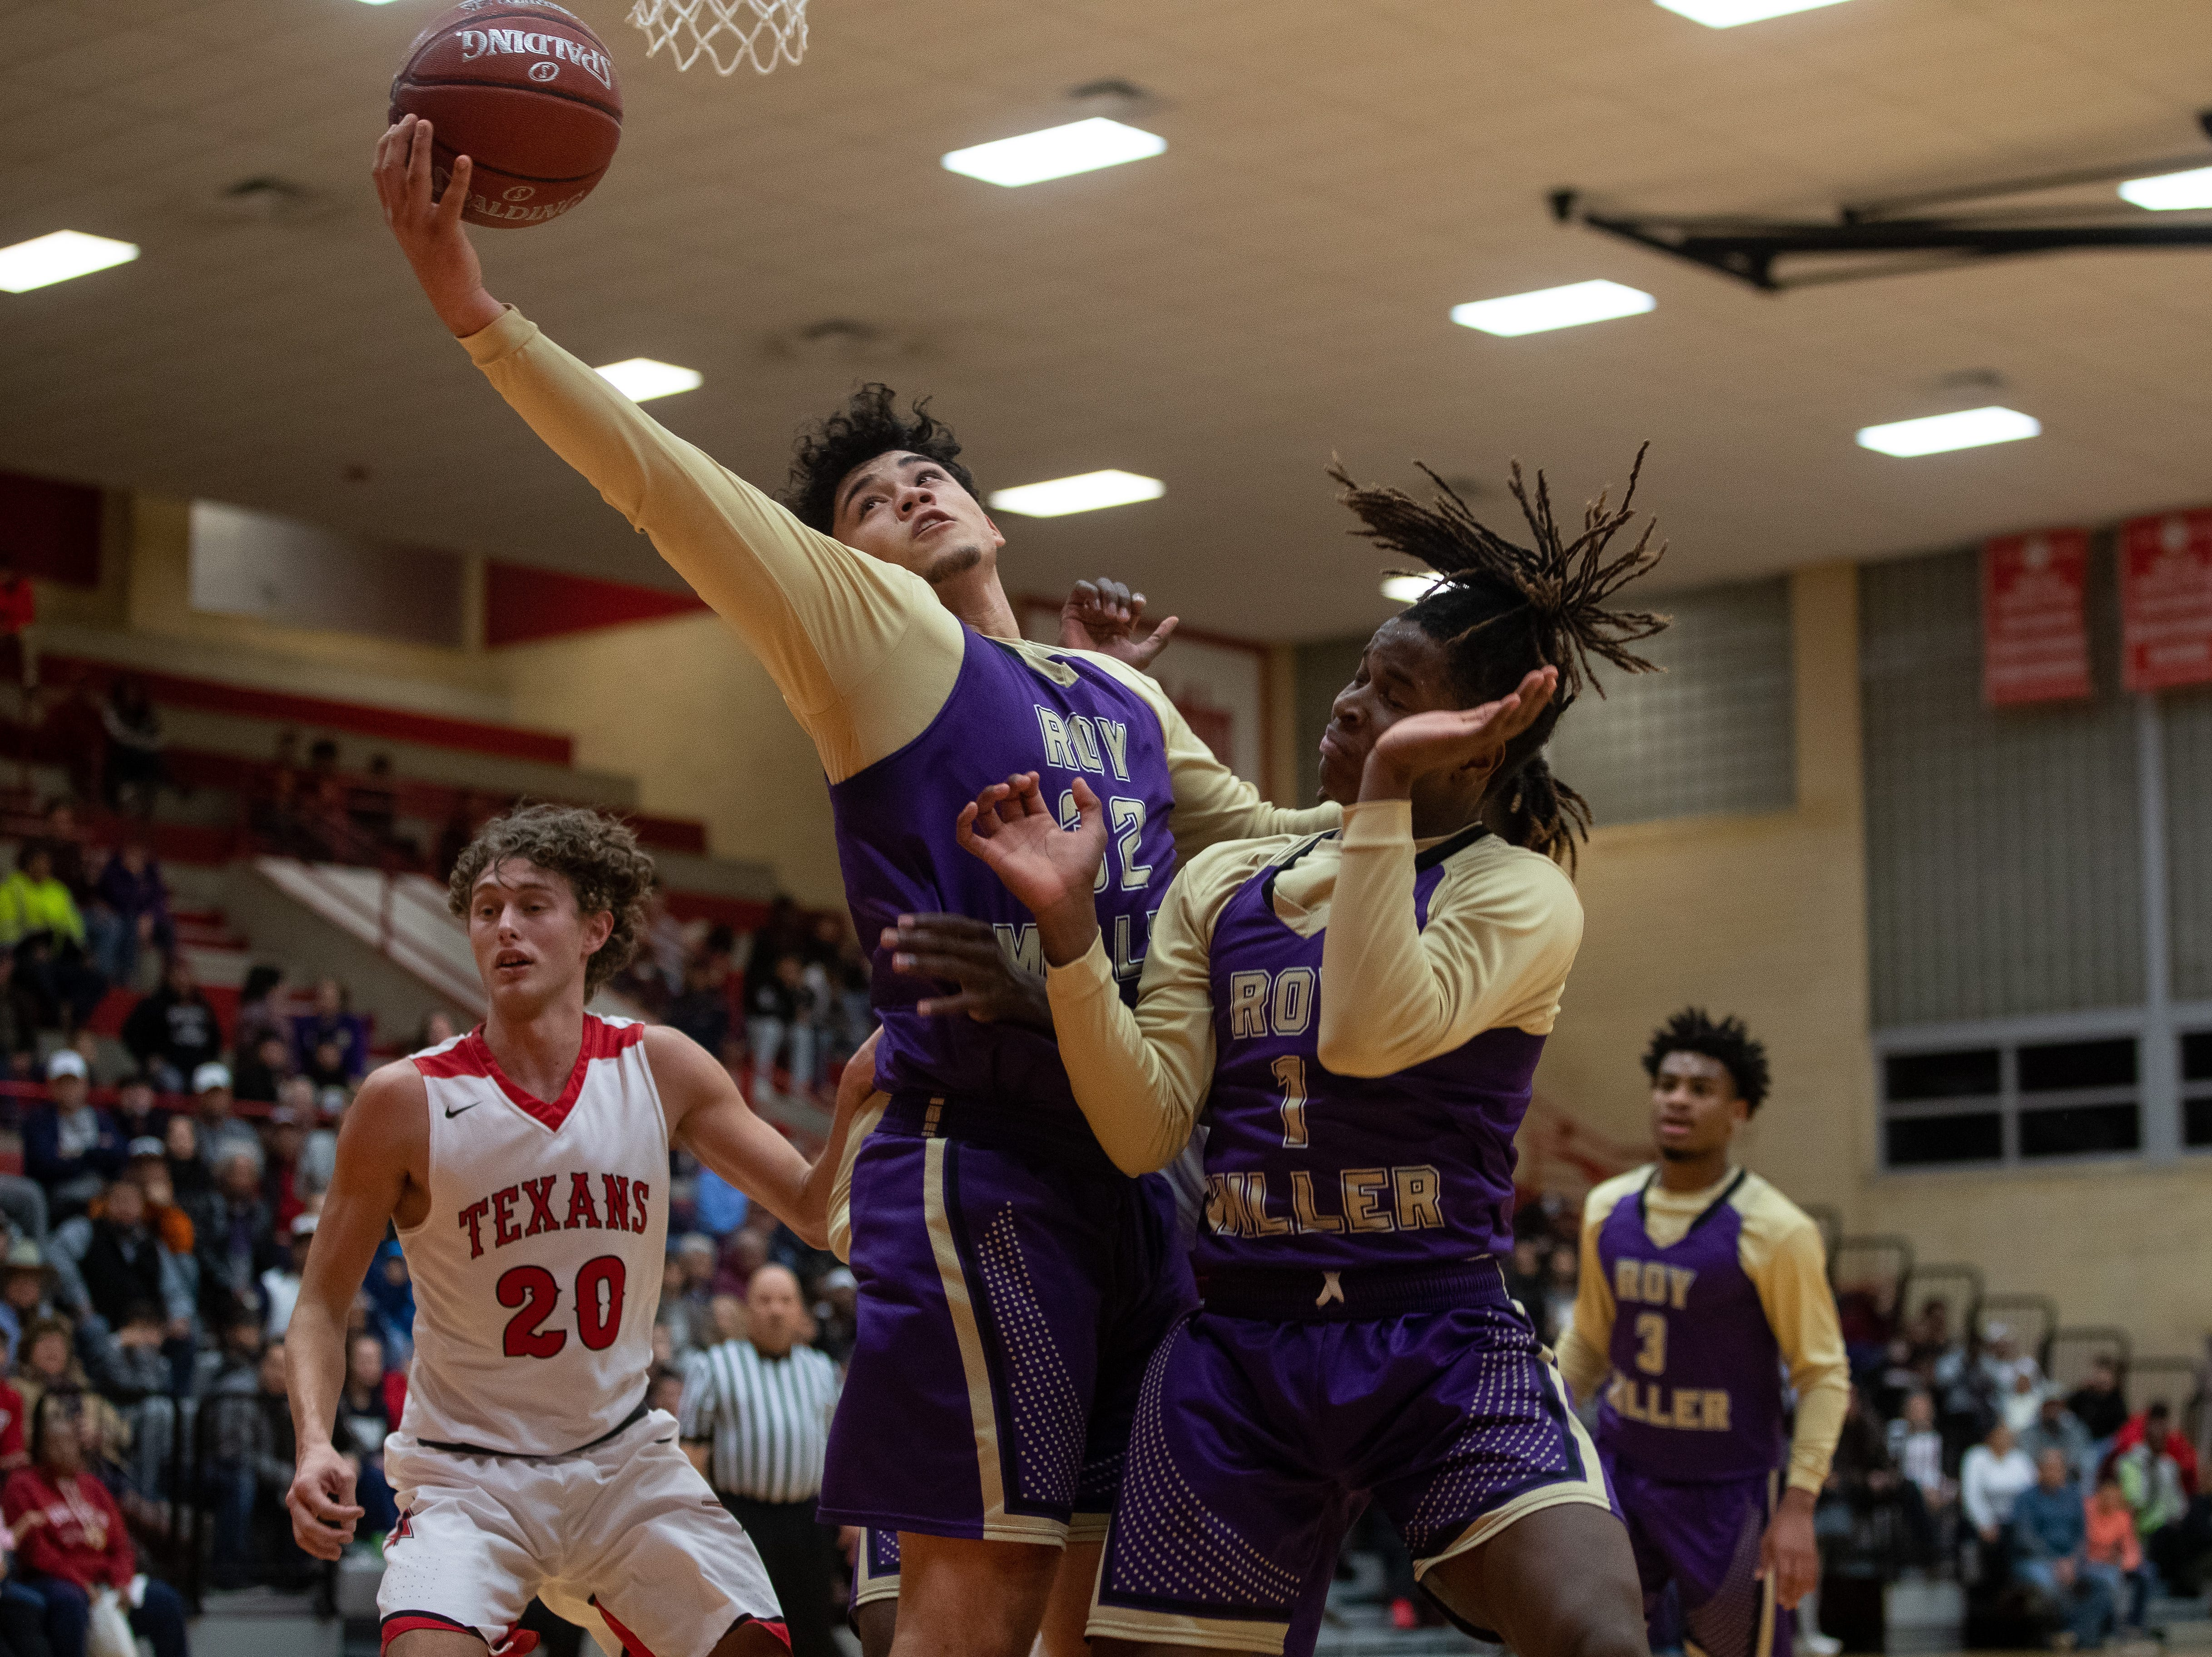 Miller's J.D. Reid reachers to make a rebound during the second quarter of their game against Ray at Ray High School on Wednesday, Jan. 2, 2018.